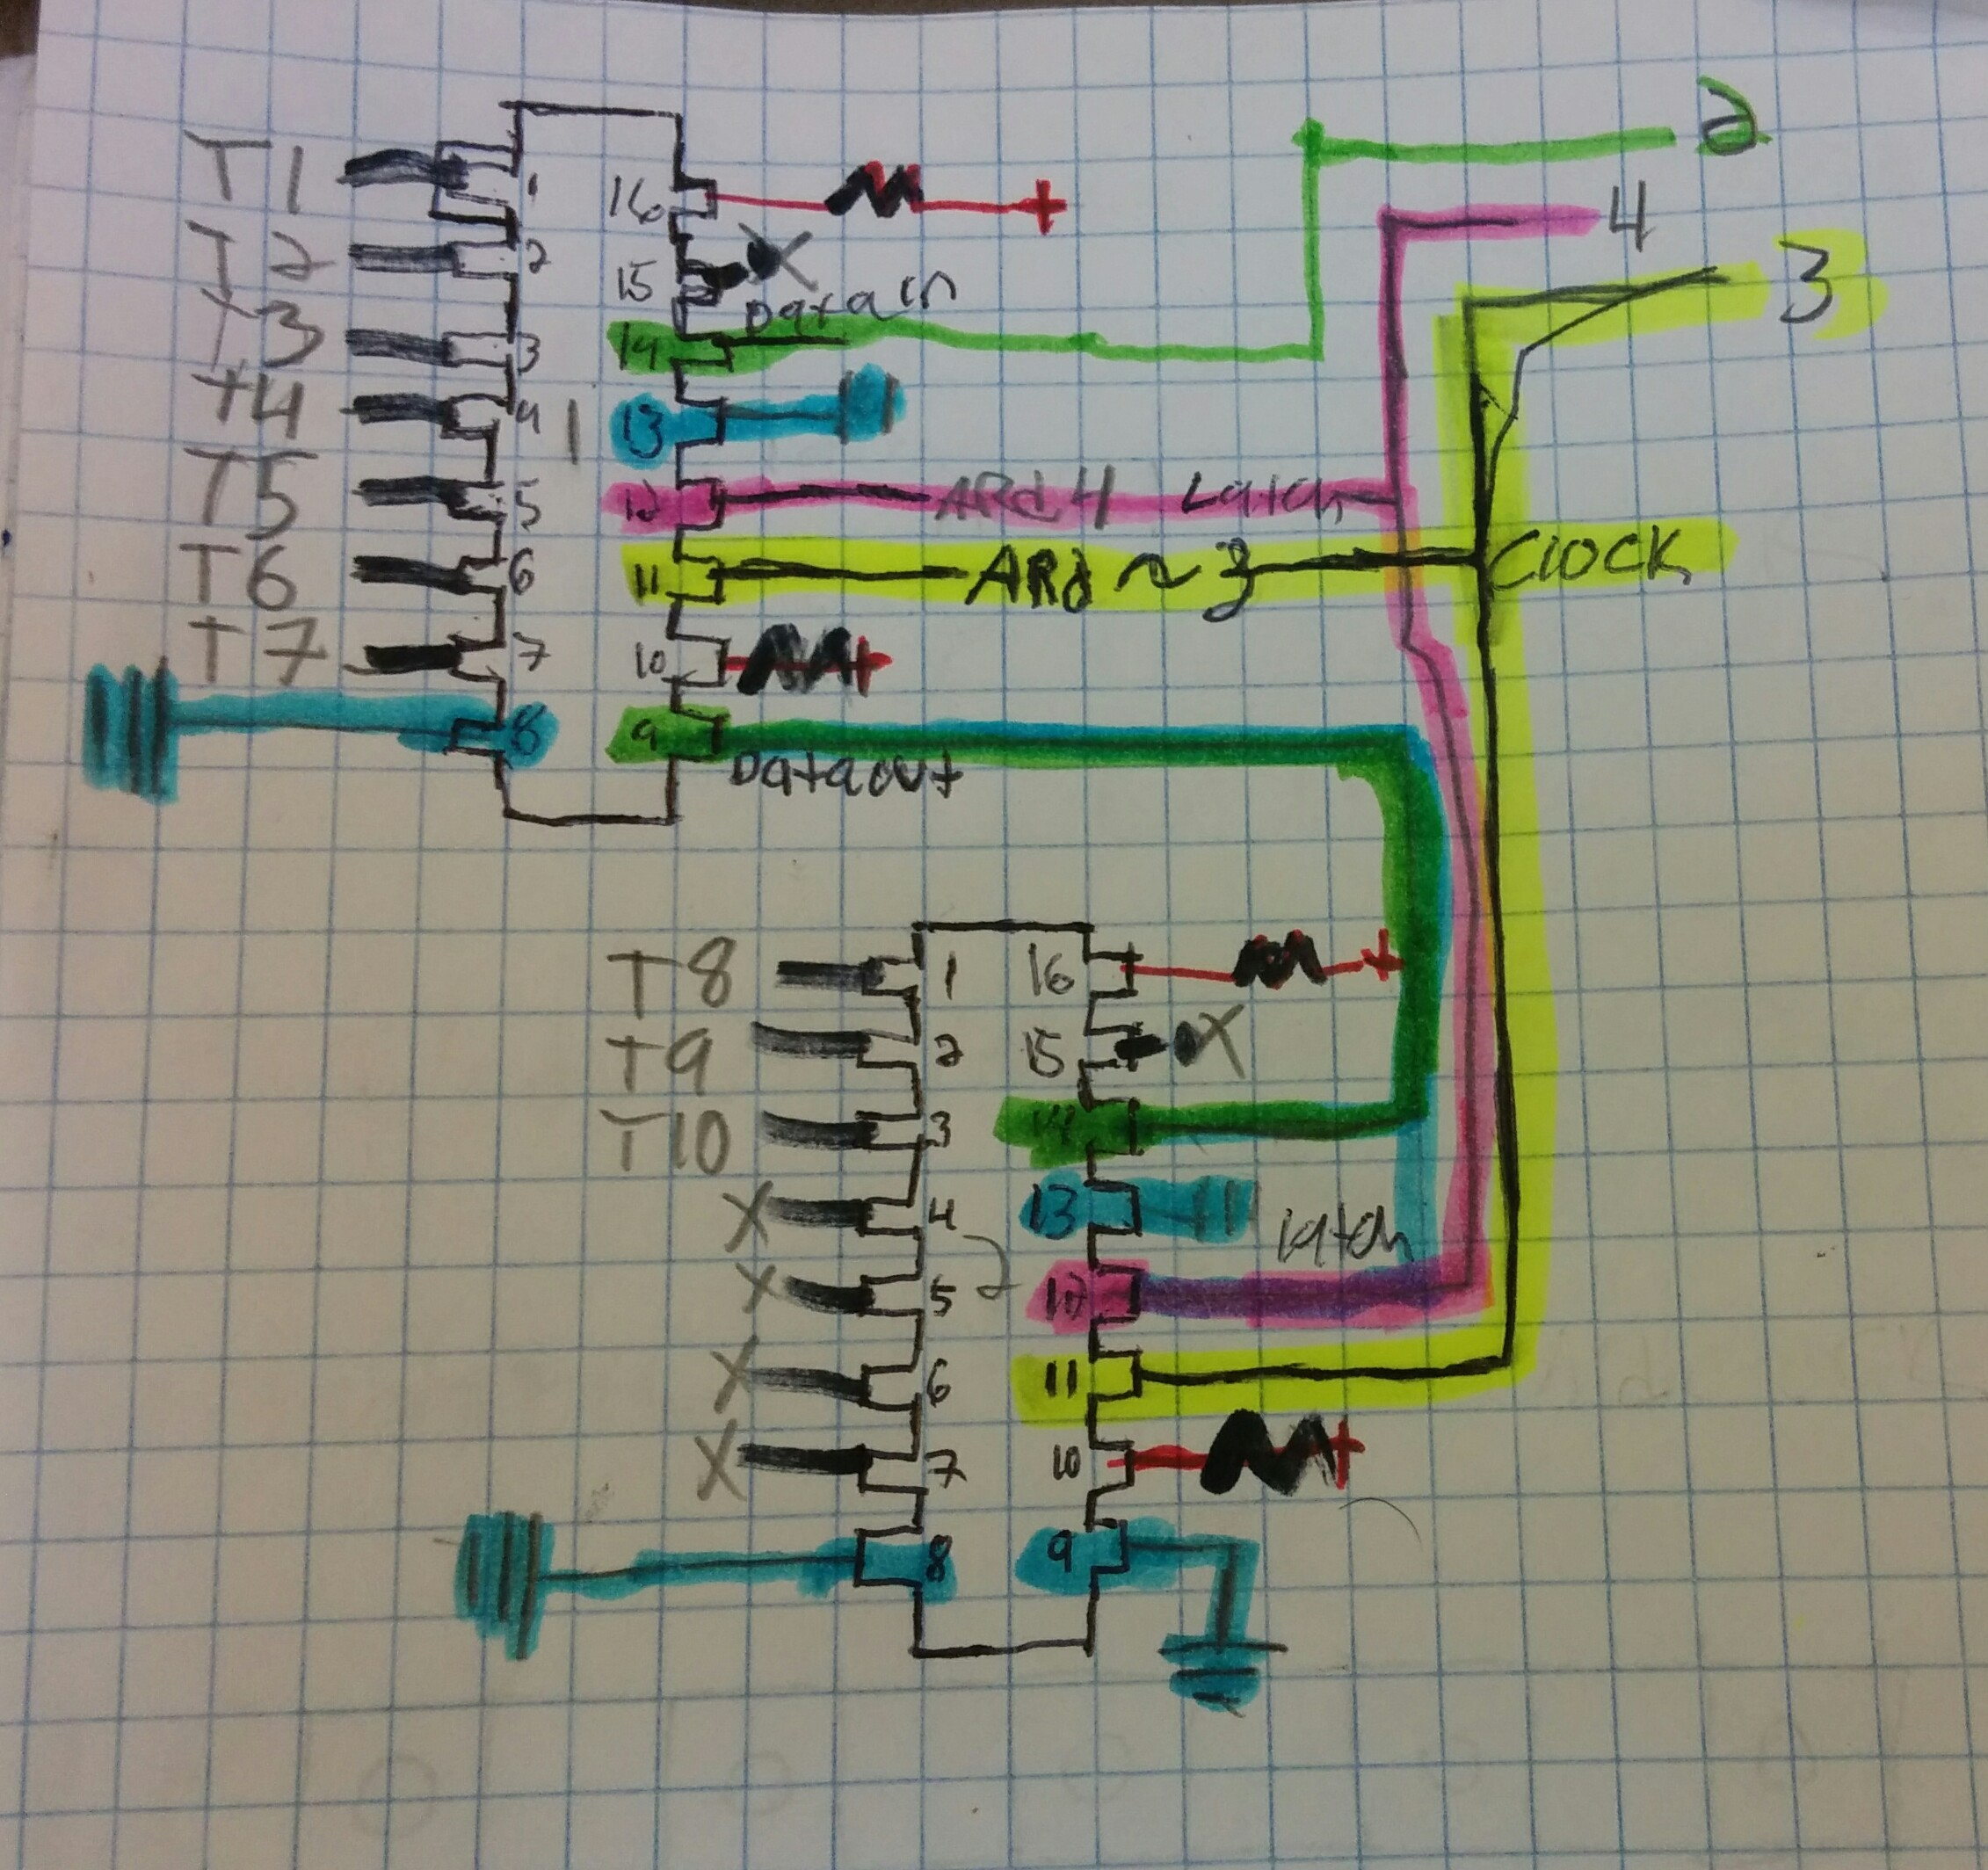 How To Build A 5x5 Led Matrix Hackerscapes Shift Register Breadboard Circuit Daisy Chain